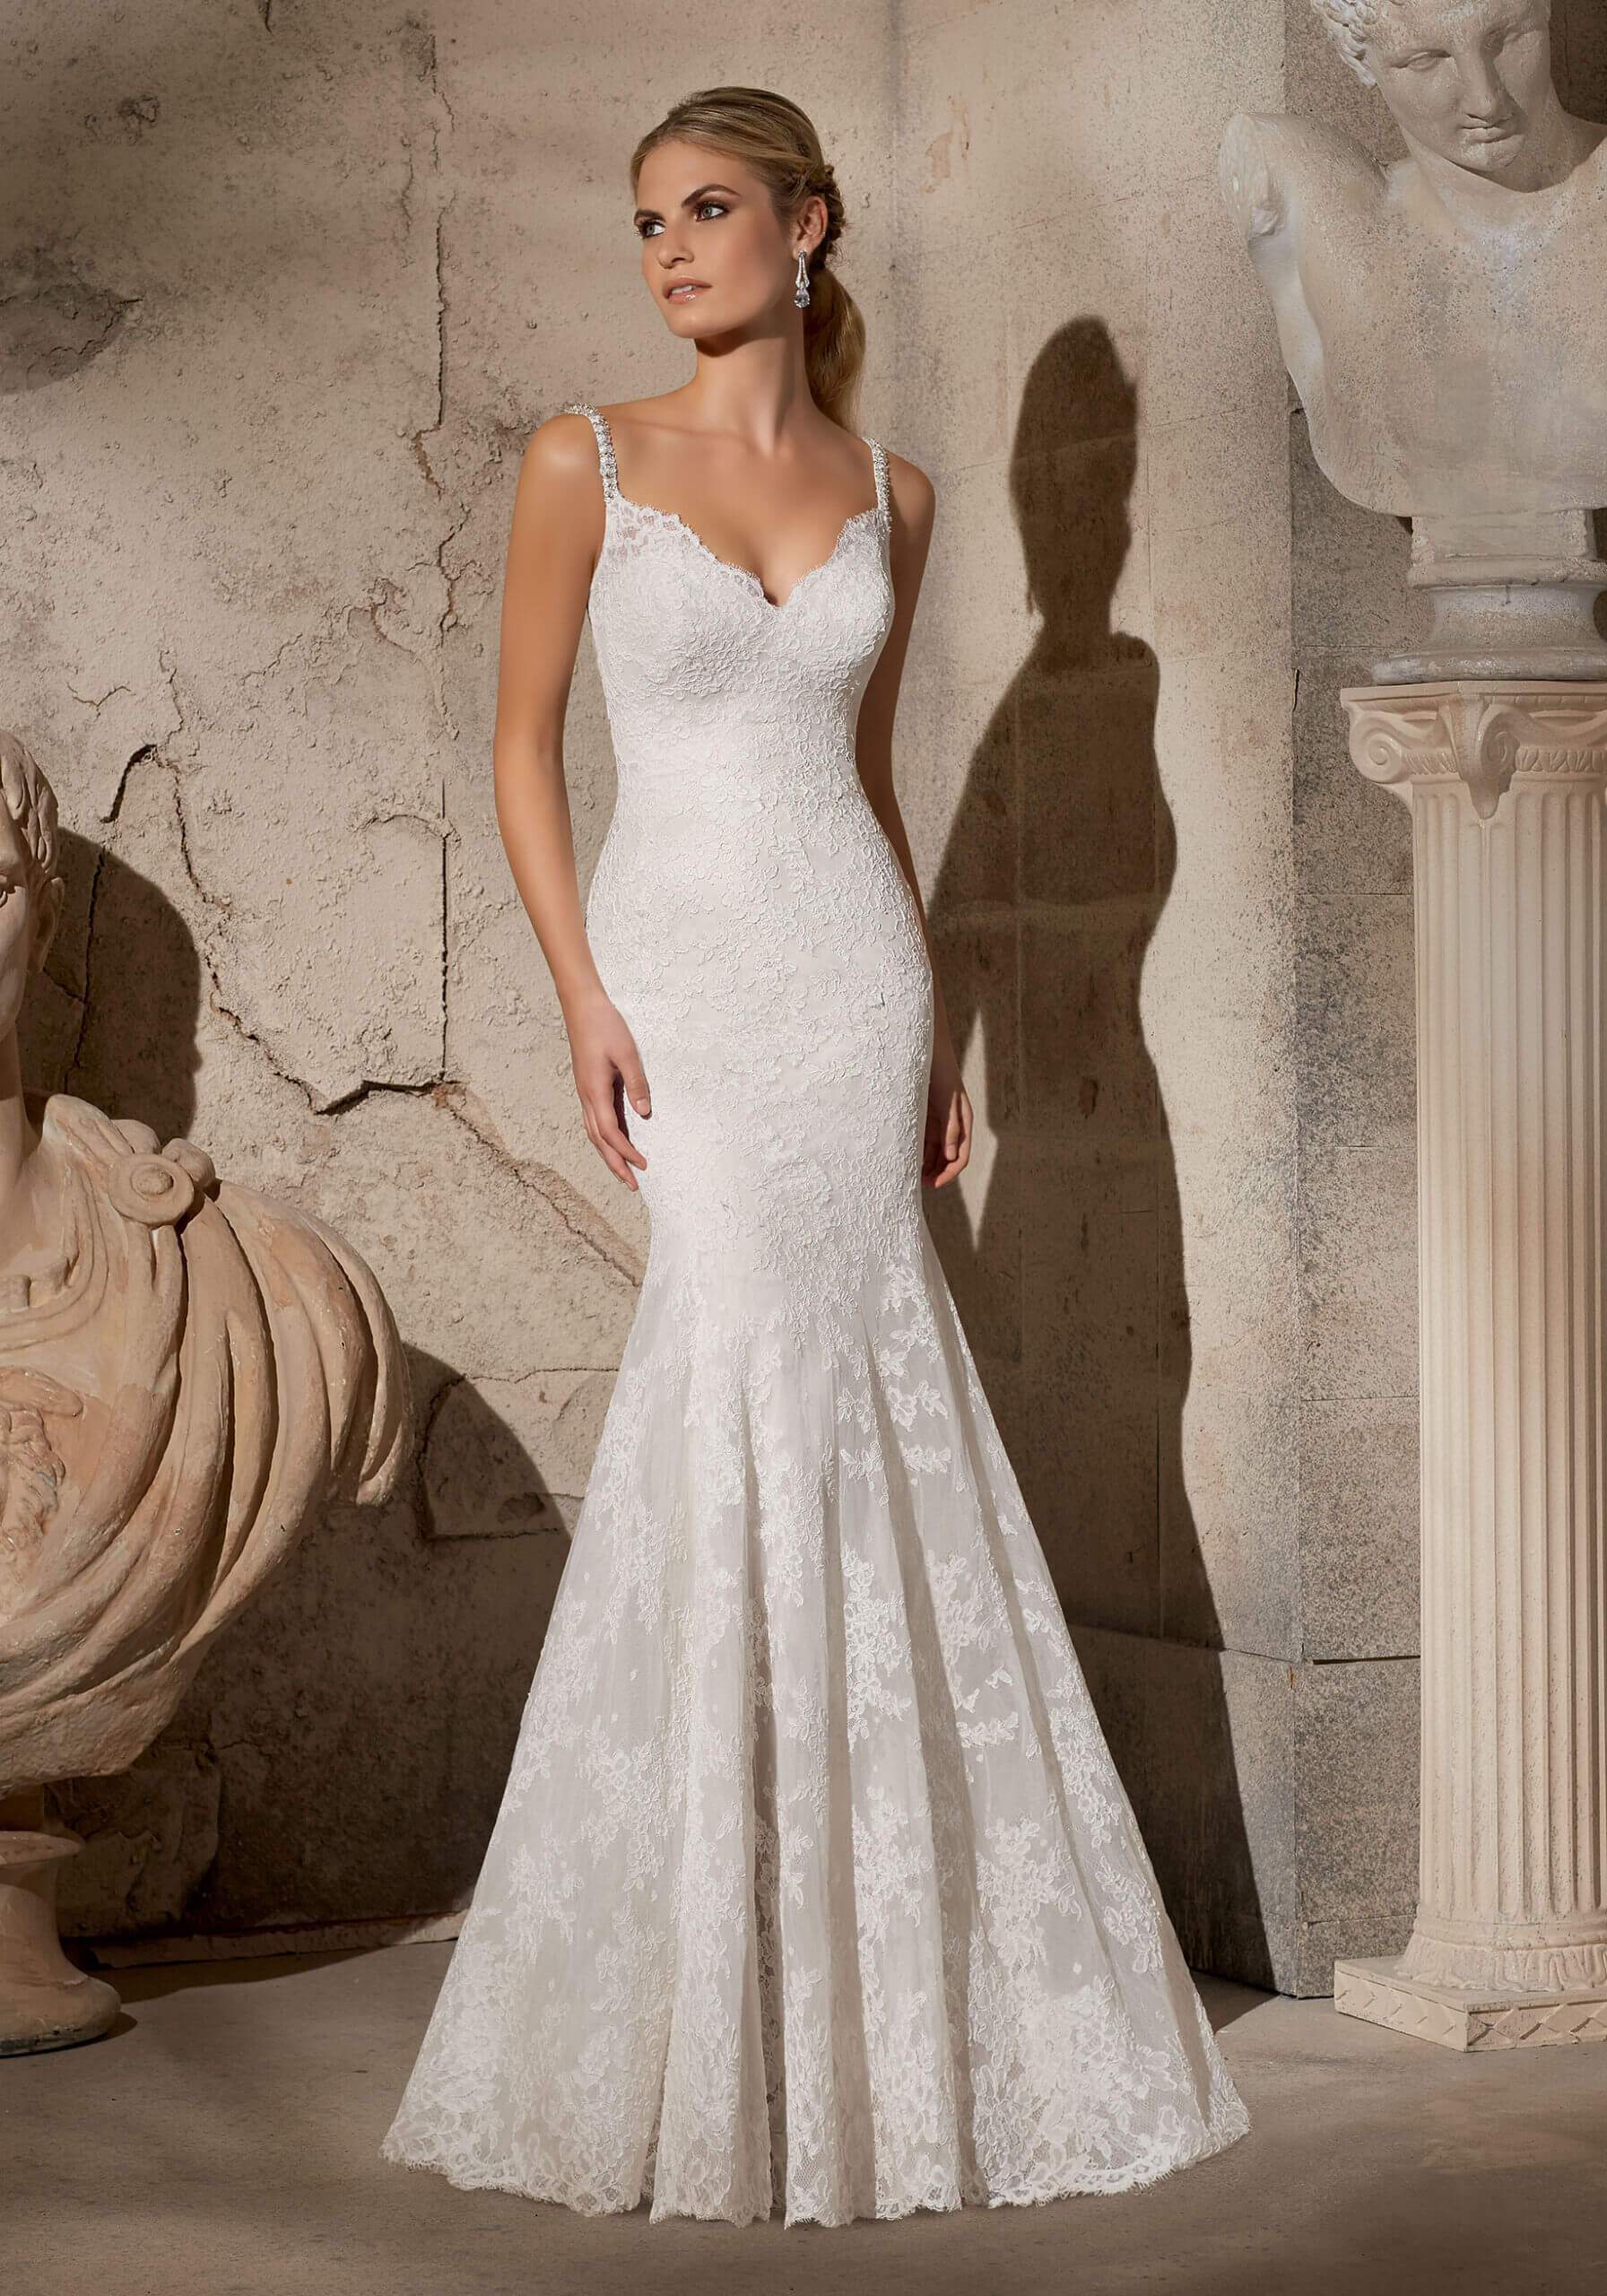 Elegant Alencon Lace with Crystal Beaded Straps Morilee Bridal Wedding Dress. - Style.  2704.